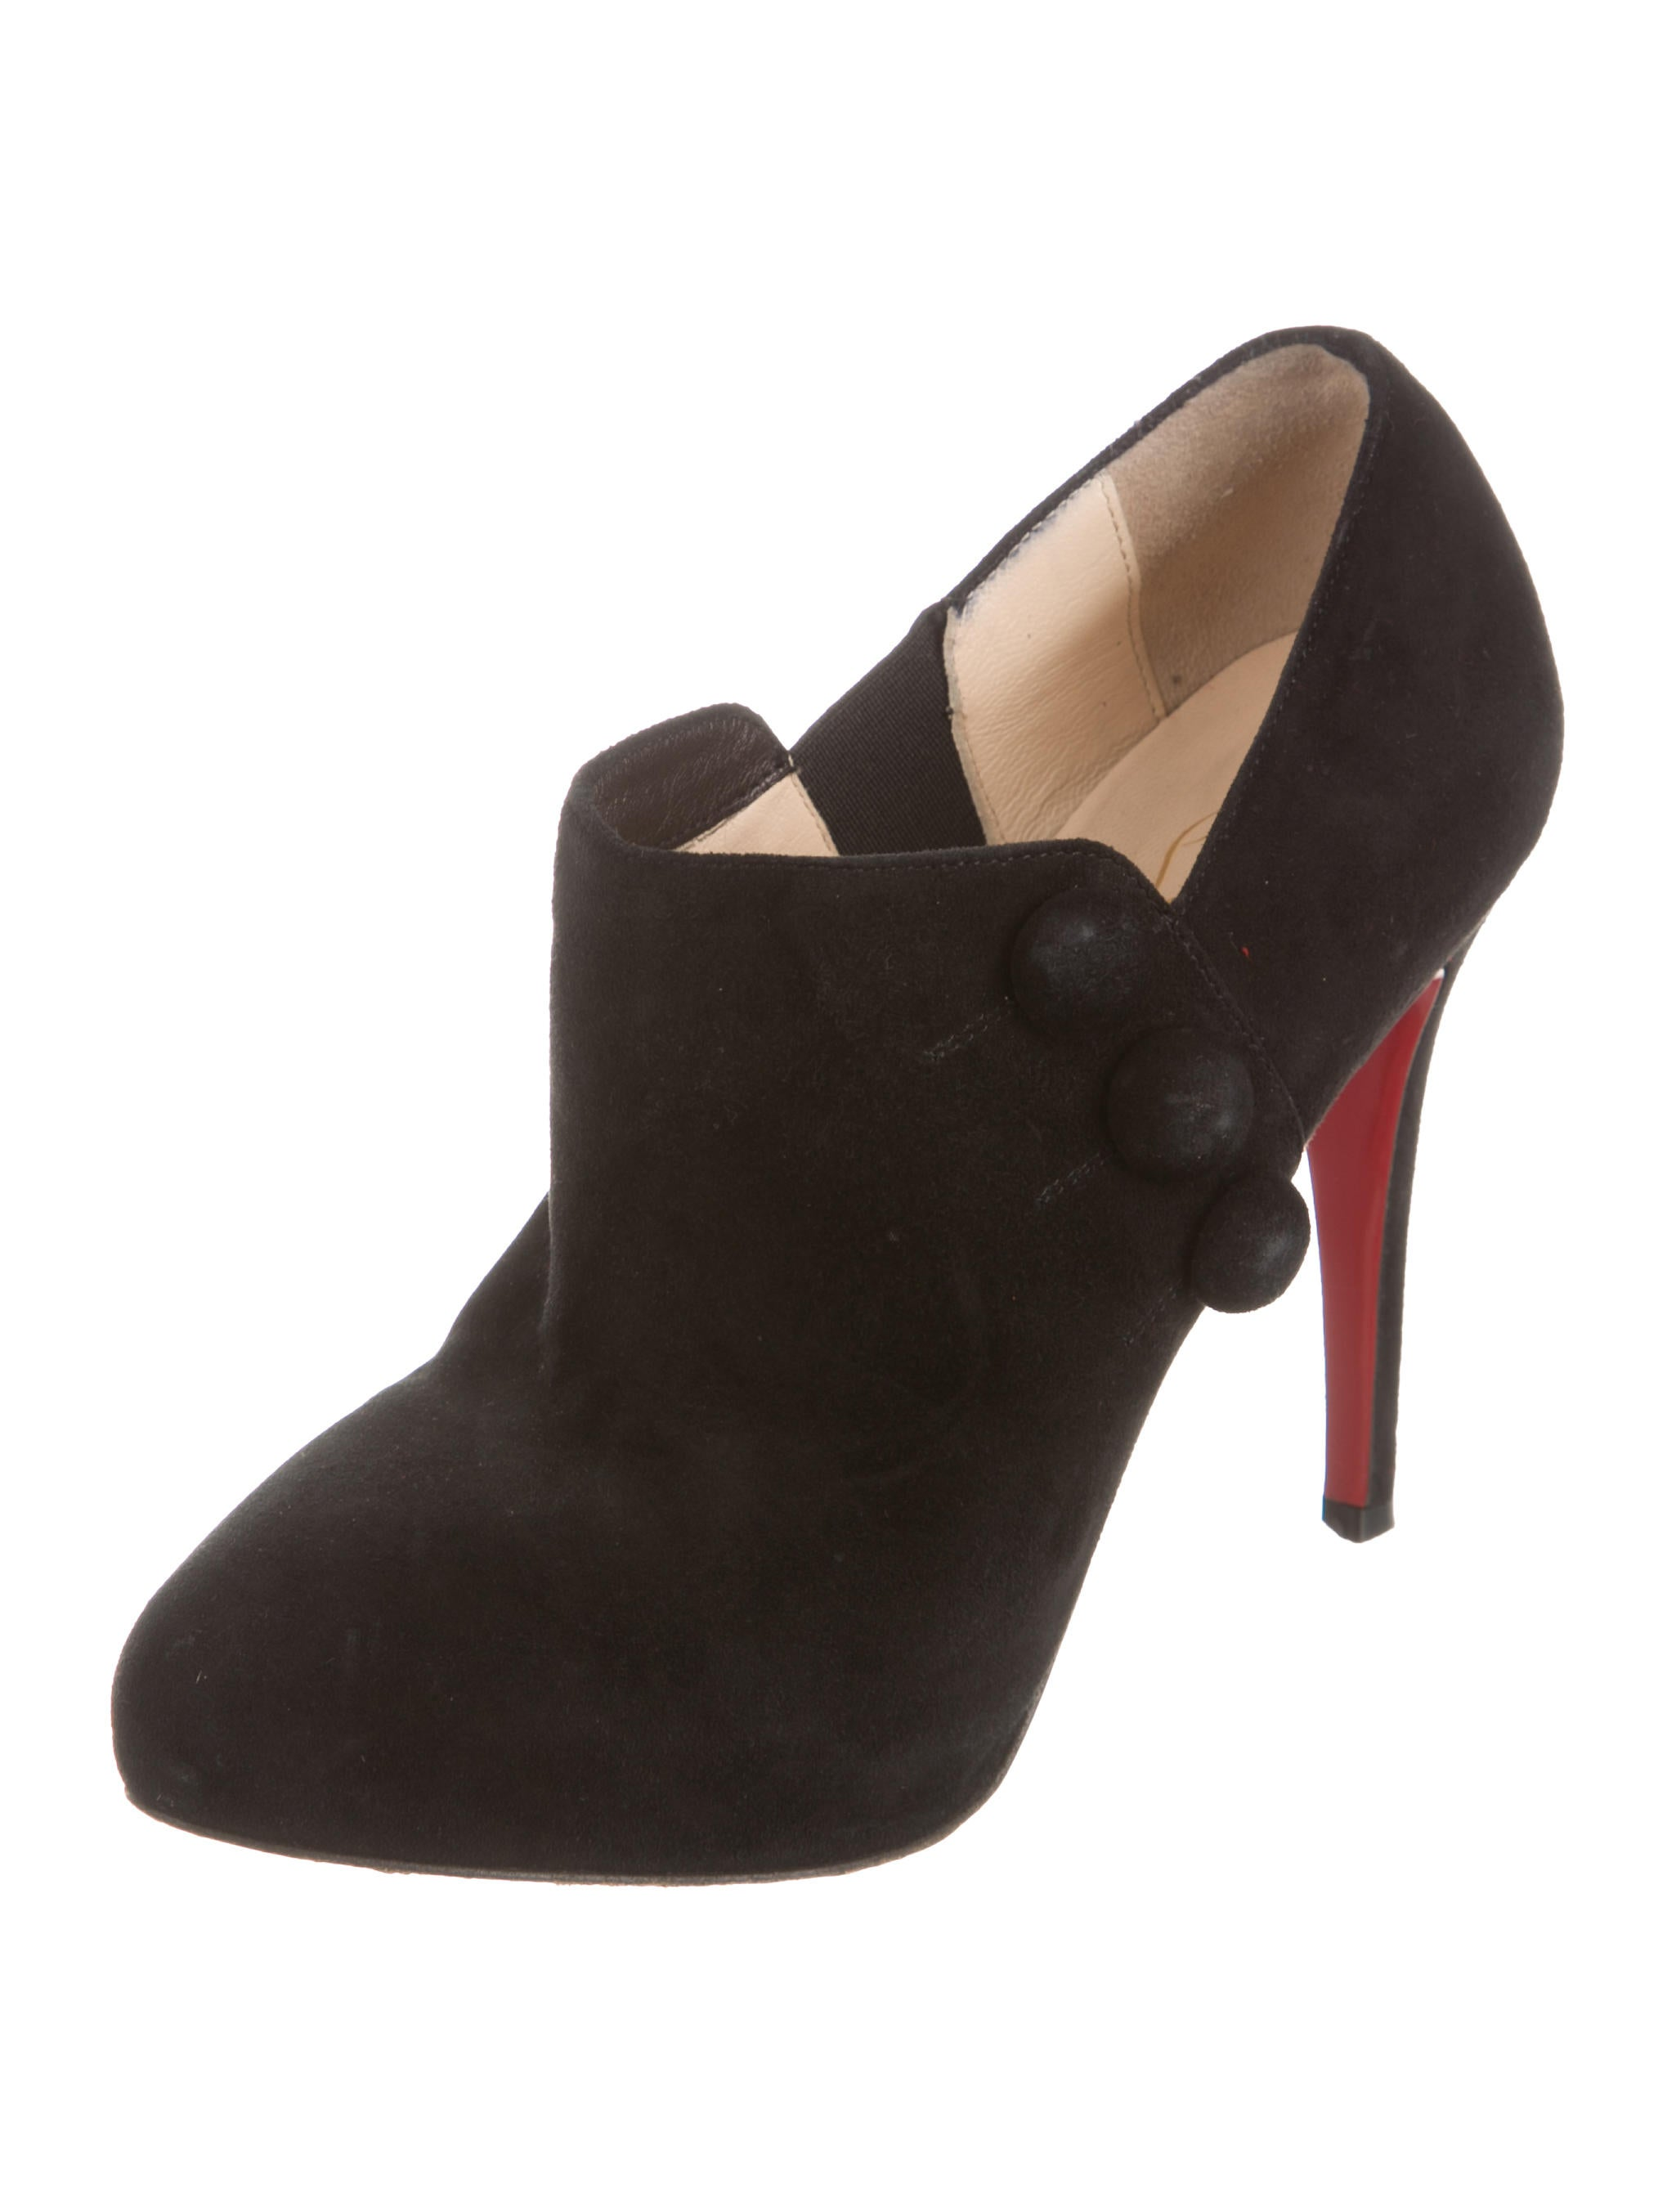 repica shoes - christian louboutin ponyhair round-toe booties, christian ...